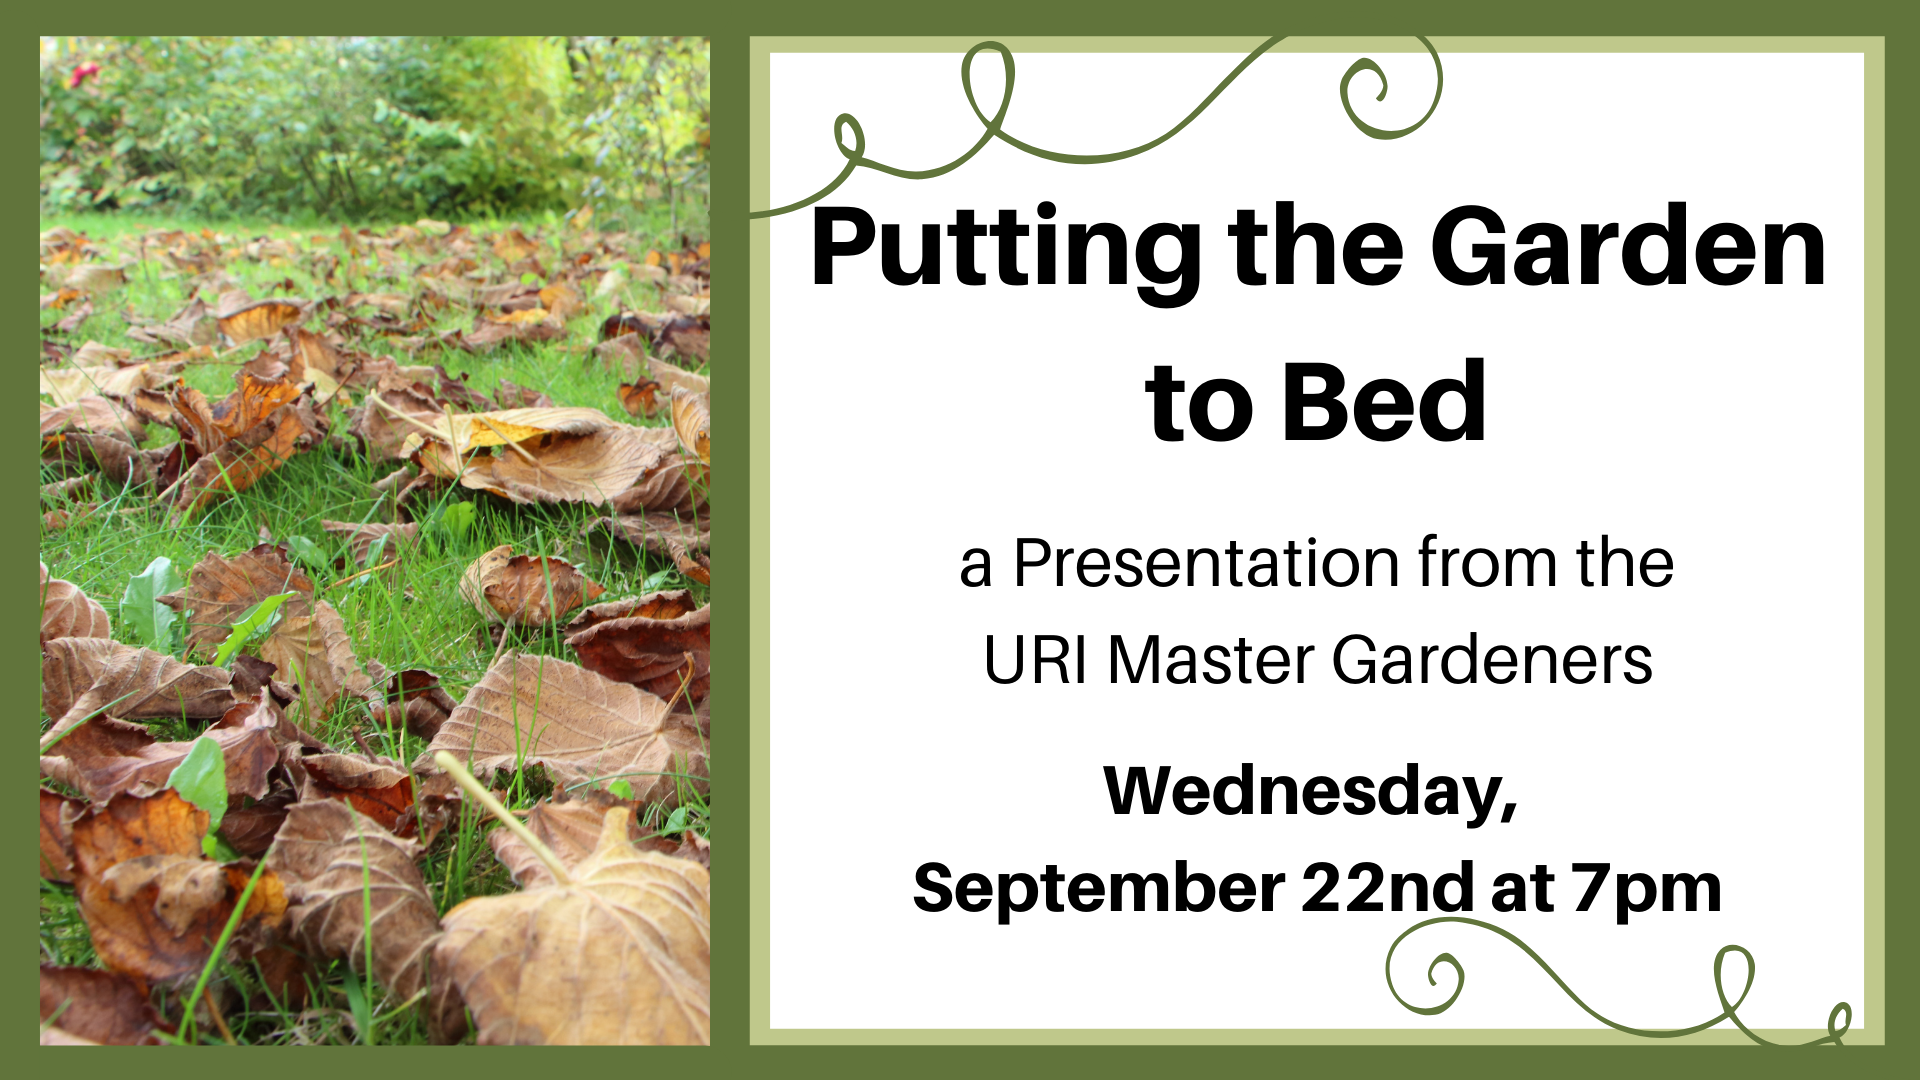 Putting the Garden to Bed